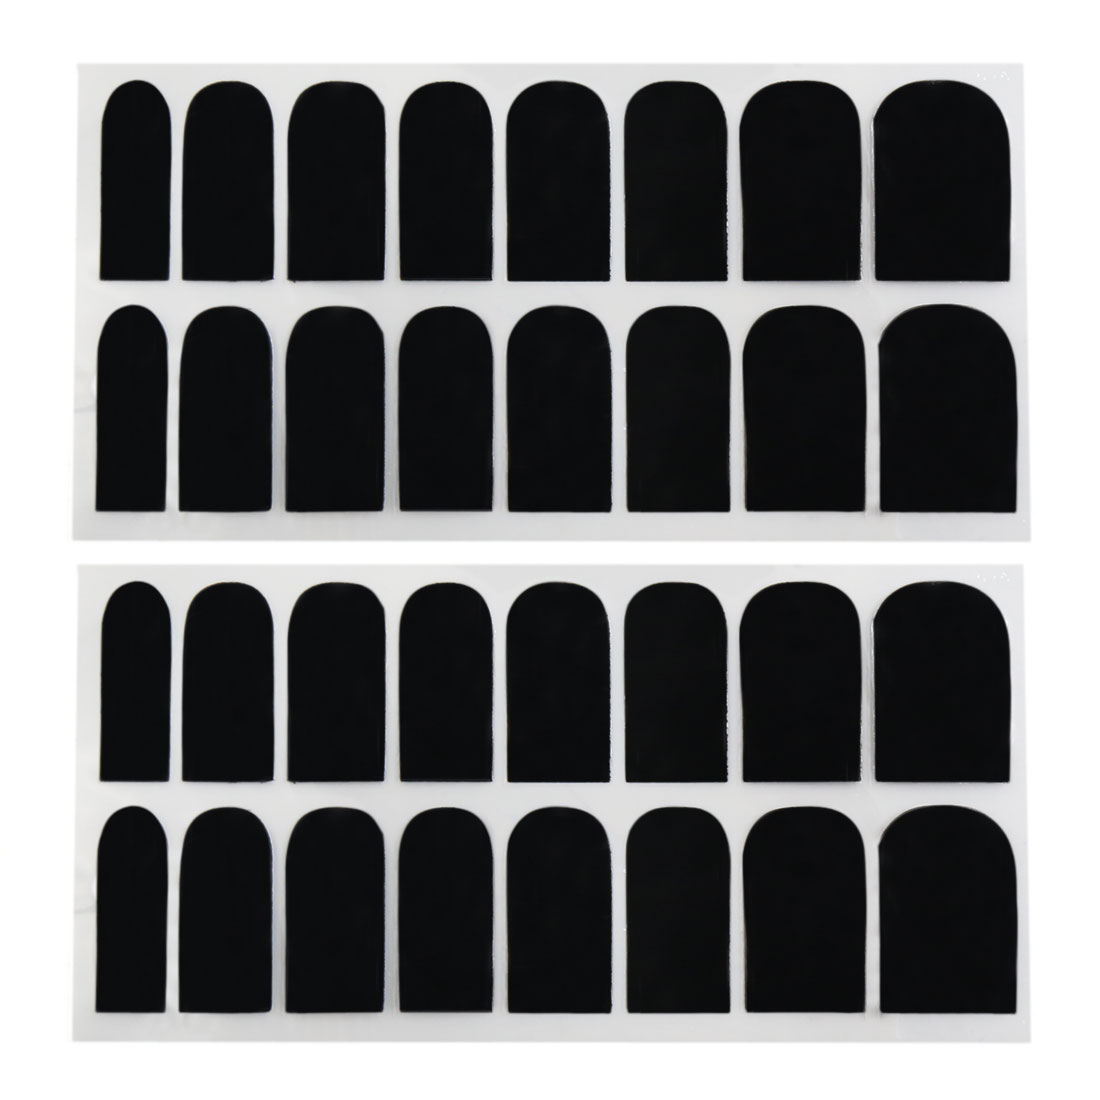 2 Sets Black Full Nail Art Sticker Manicure Decals Foil Wraps Nails Polish Strip